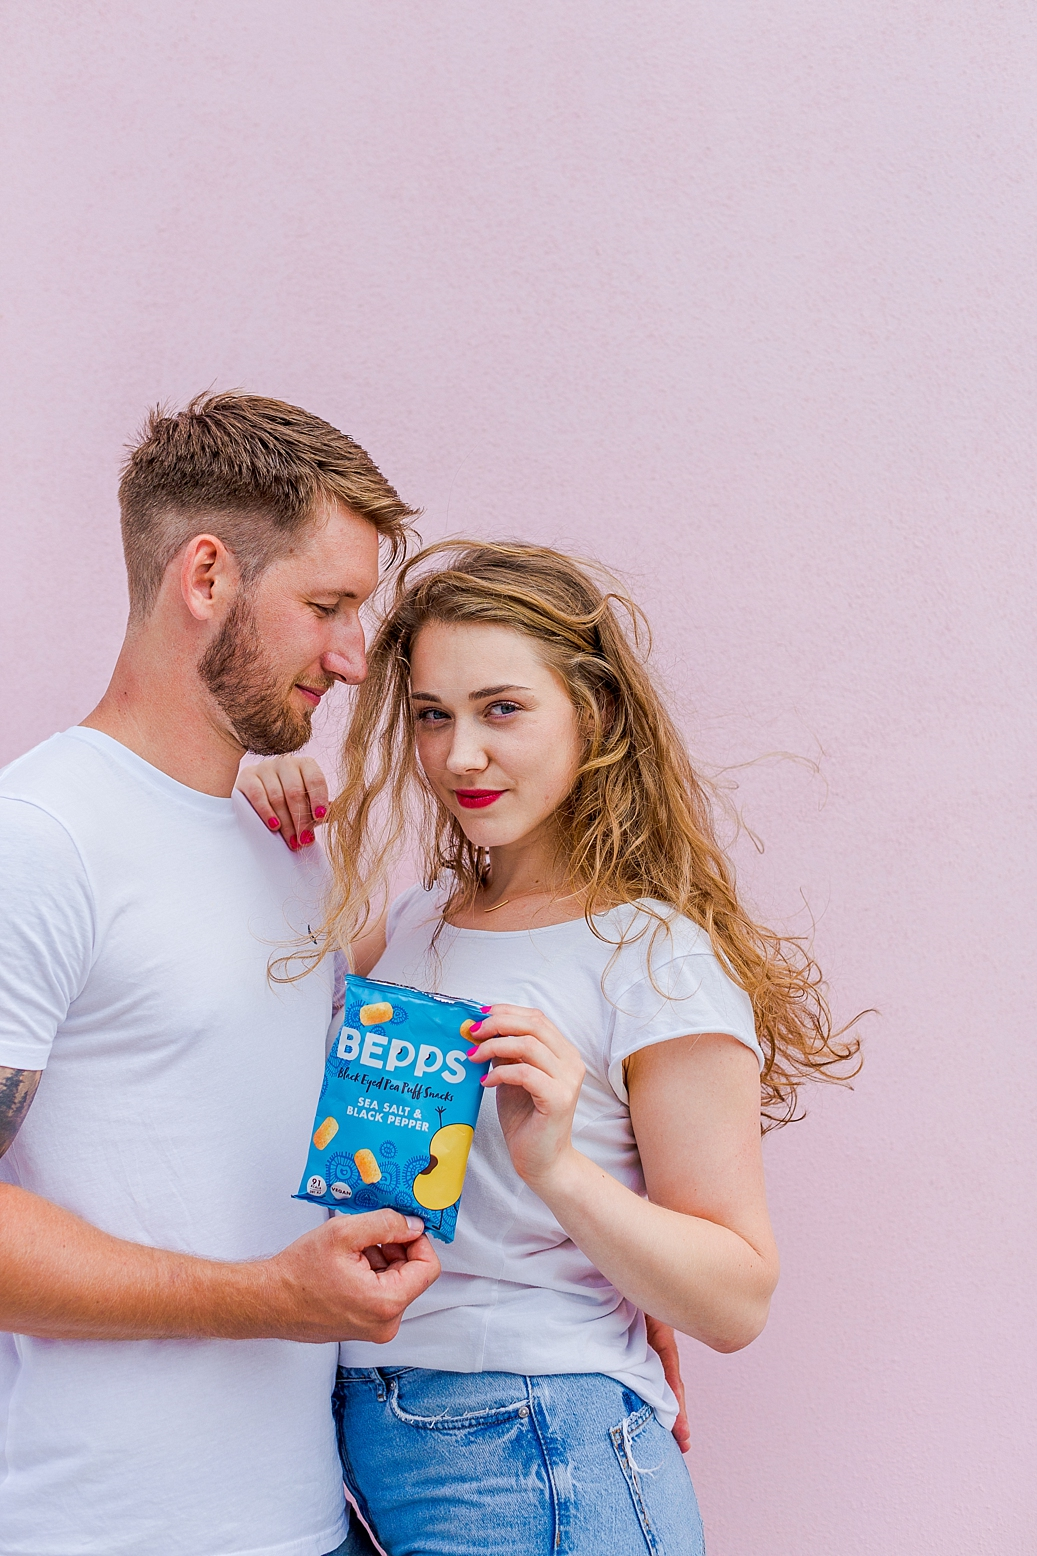 Colourful content creation for Bepps vegan snacks. Product photography & styling by Marianne Taylor.